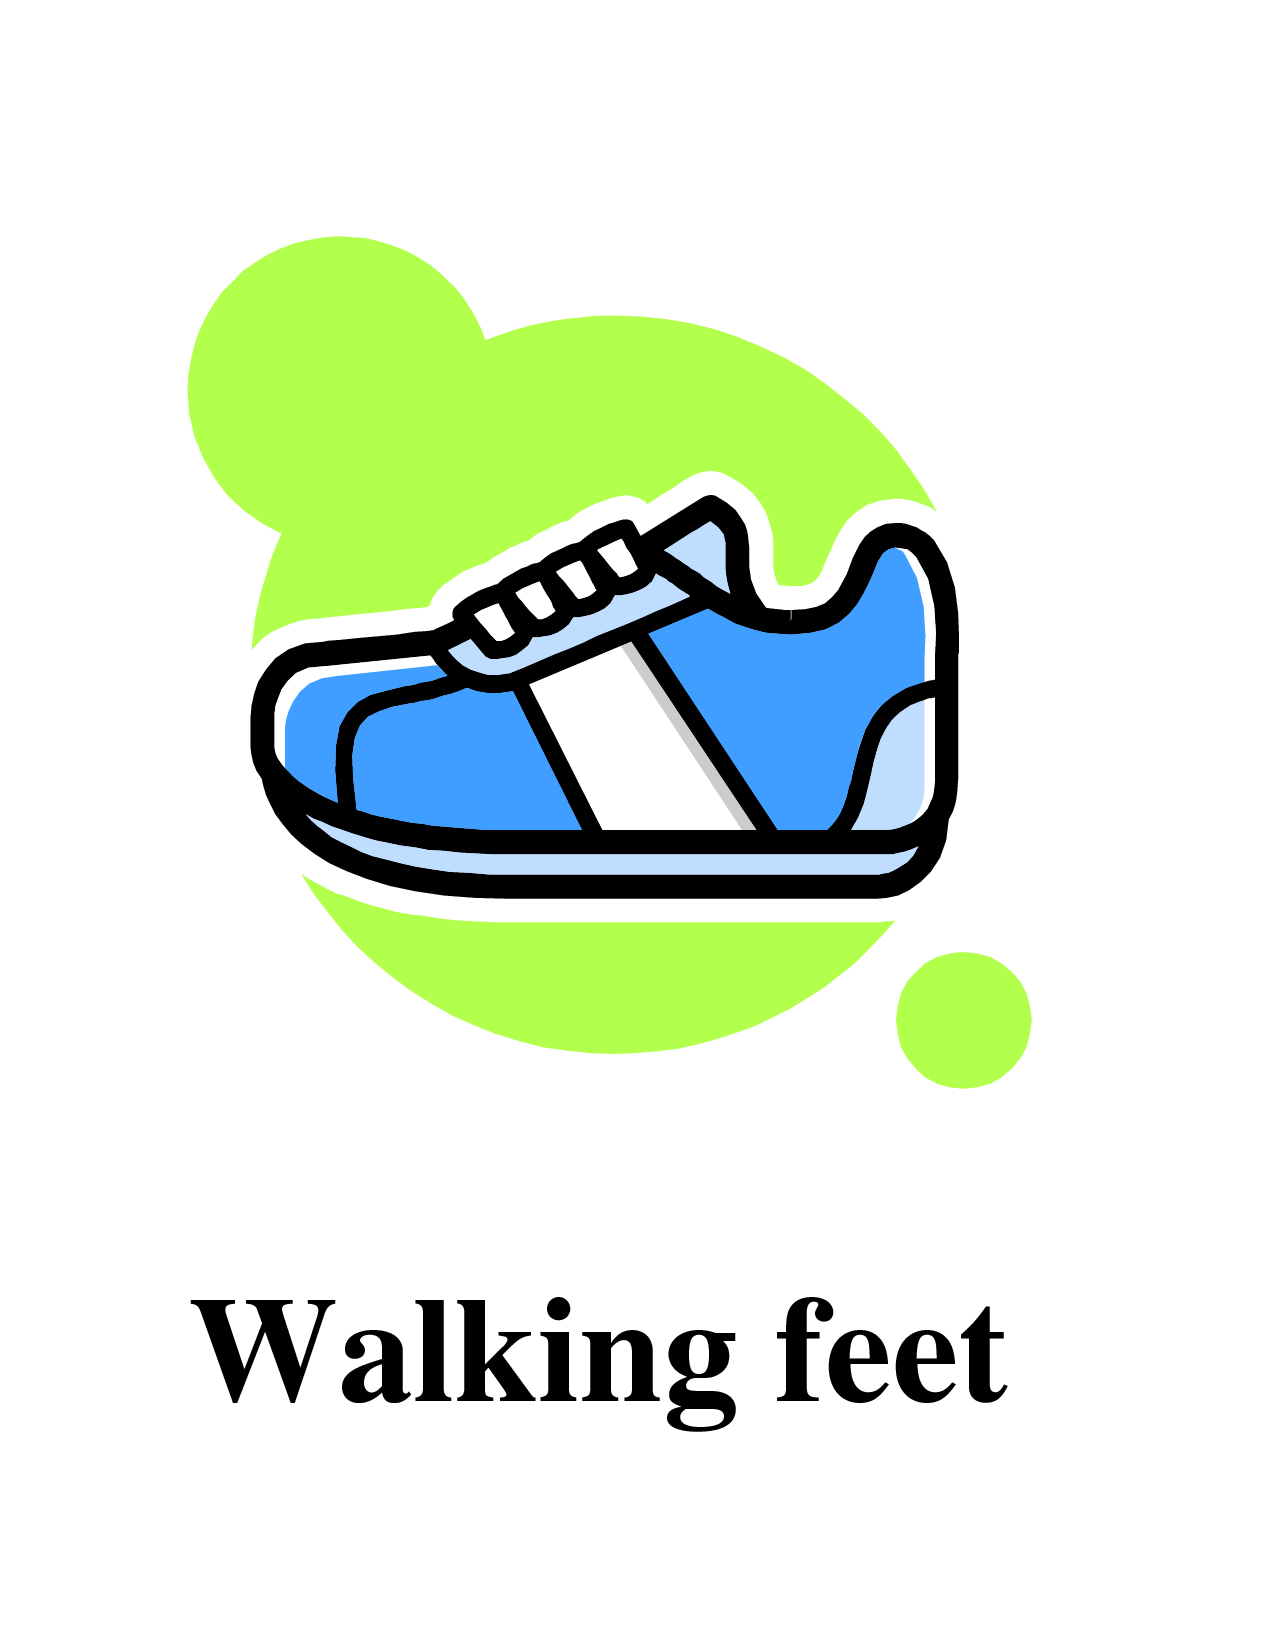 Photos of walking feet template shoe print clip art left